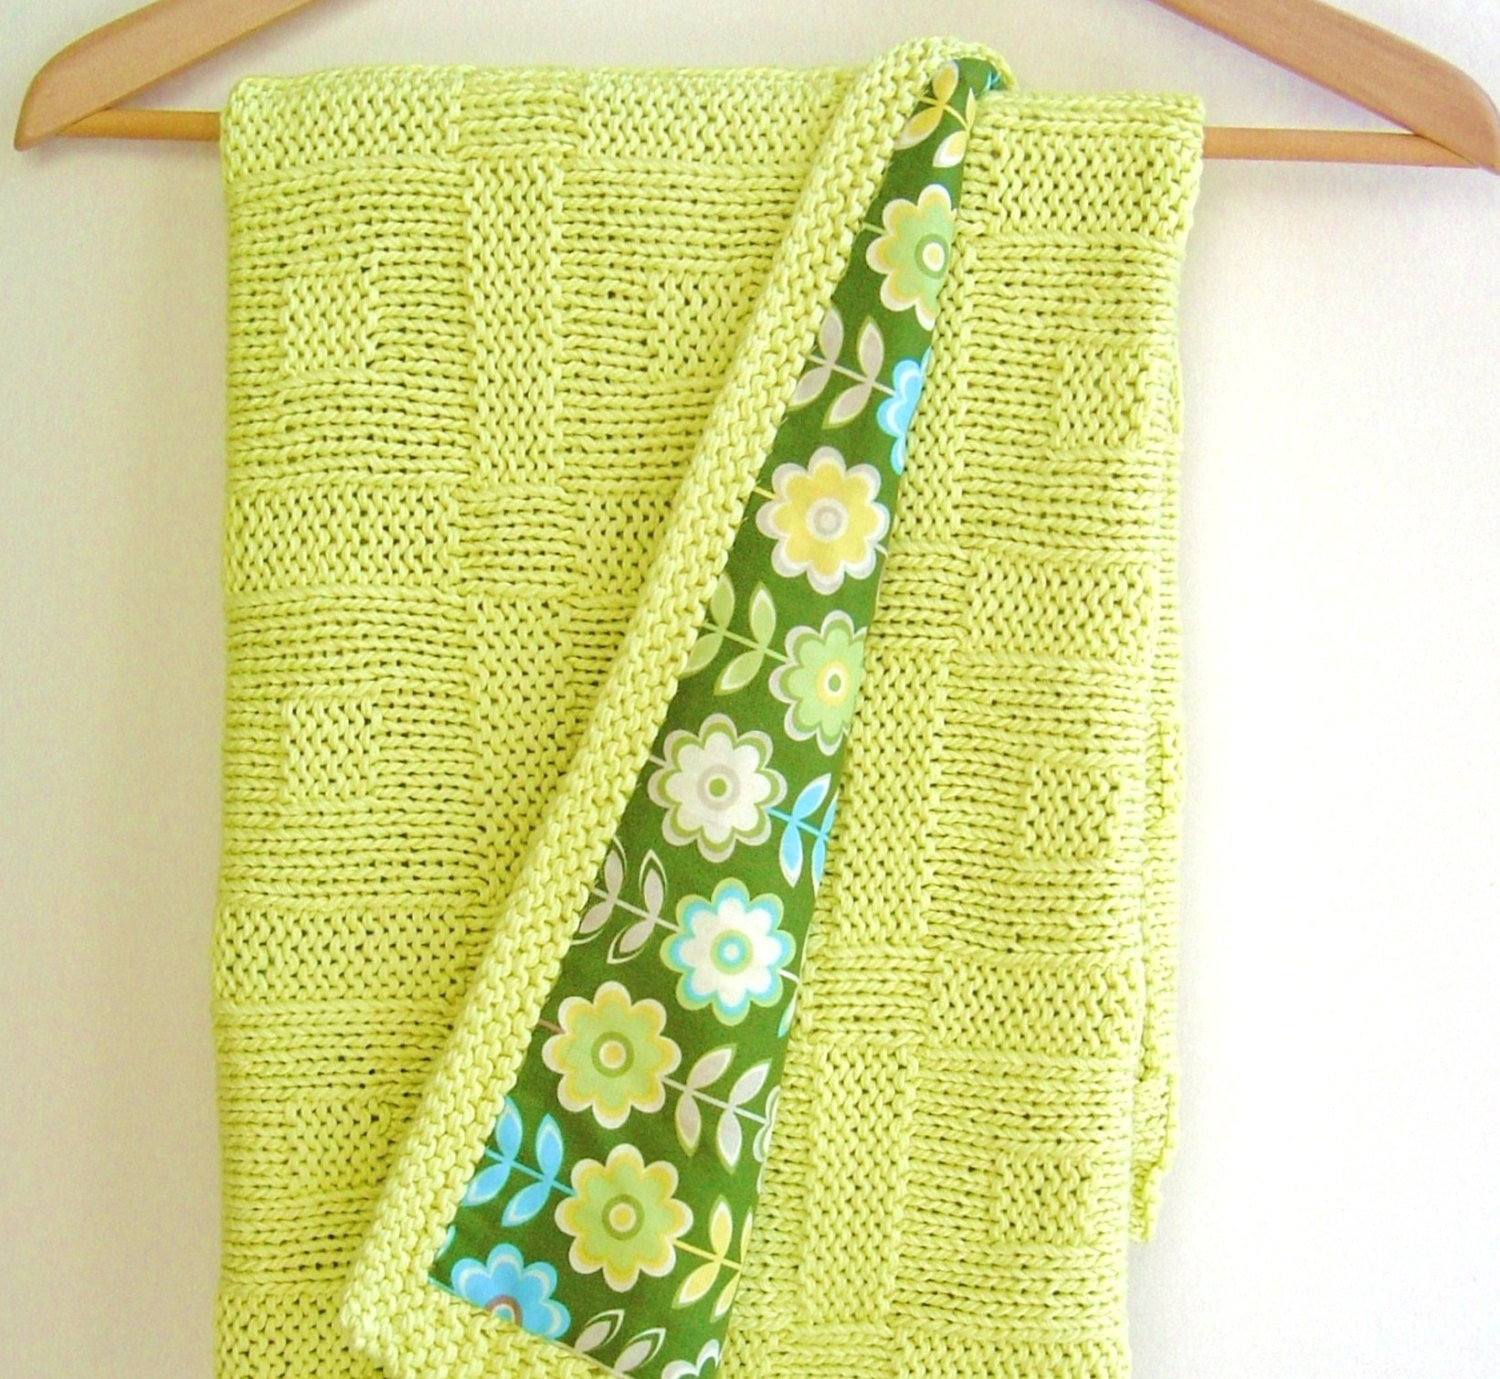 Knitting Blankets For Babies : Knitting pattern baby blanket easy beginner